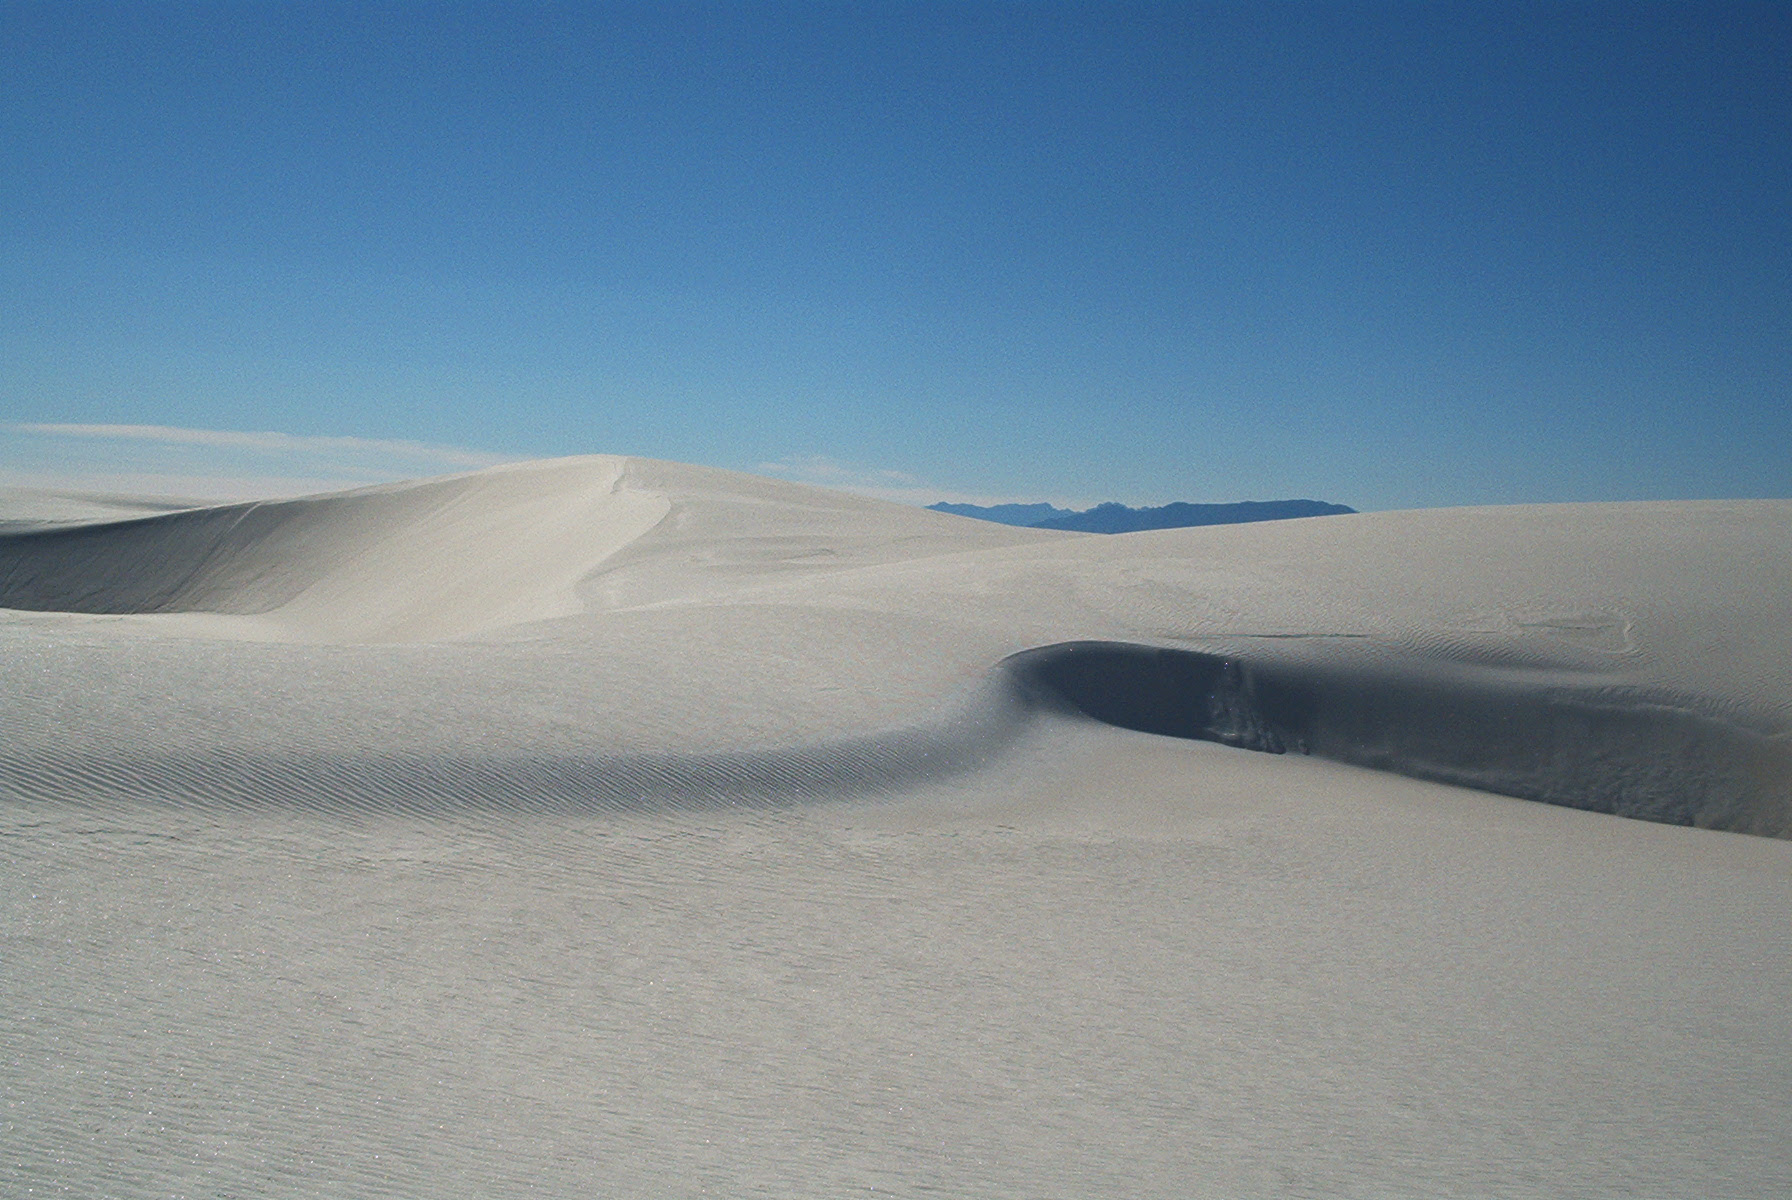 http://upload.wikimedia.org/wikipedia/commons/b/b8/Dunes_as_White_Sands_NM.jpg